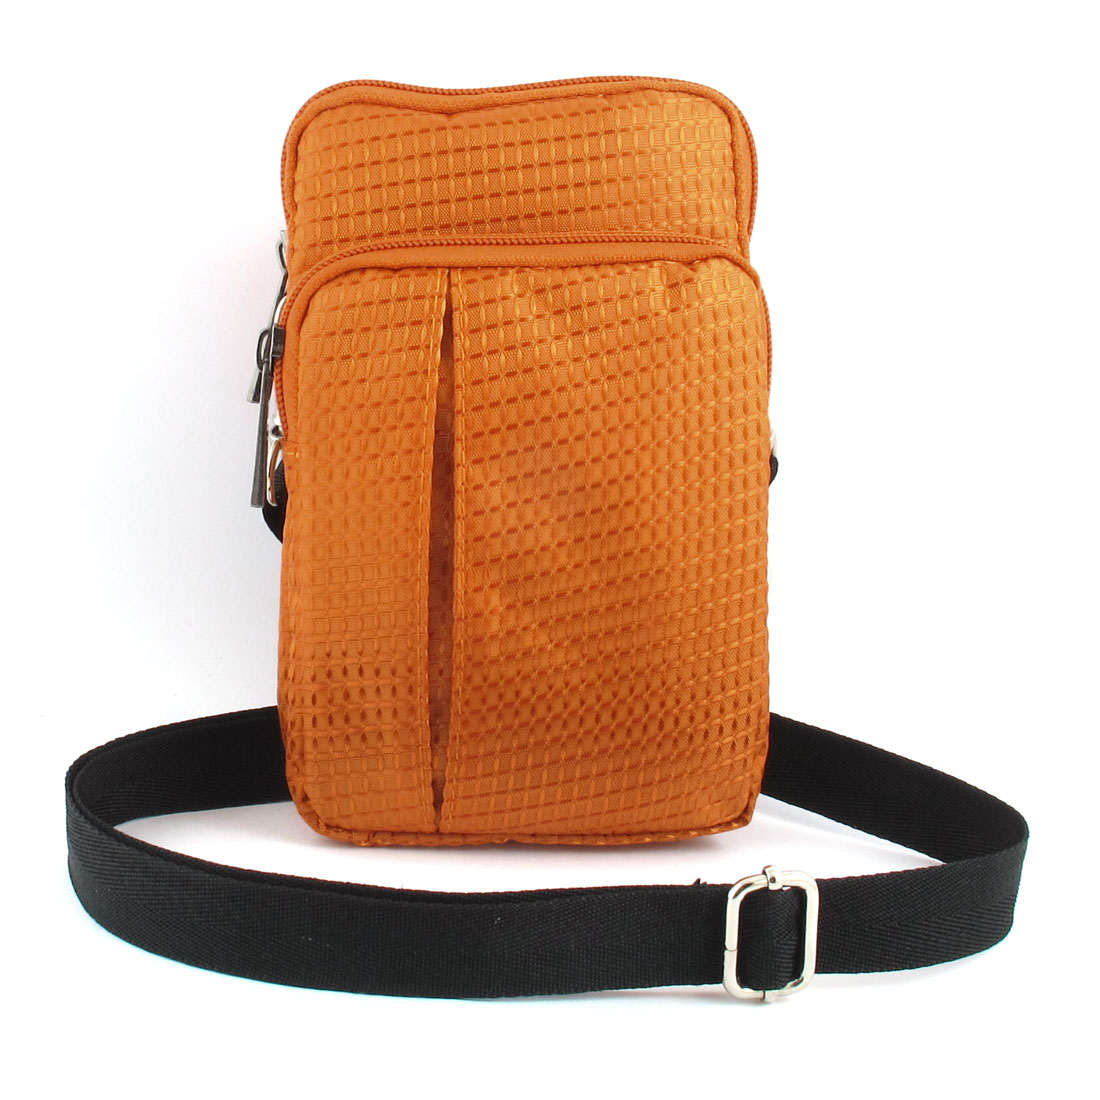 Unique Bargains Portable Checked Vertical Holder Shoulder Bag Pouch Orange for Smartphone MP4